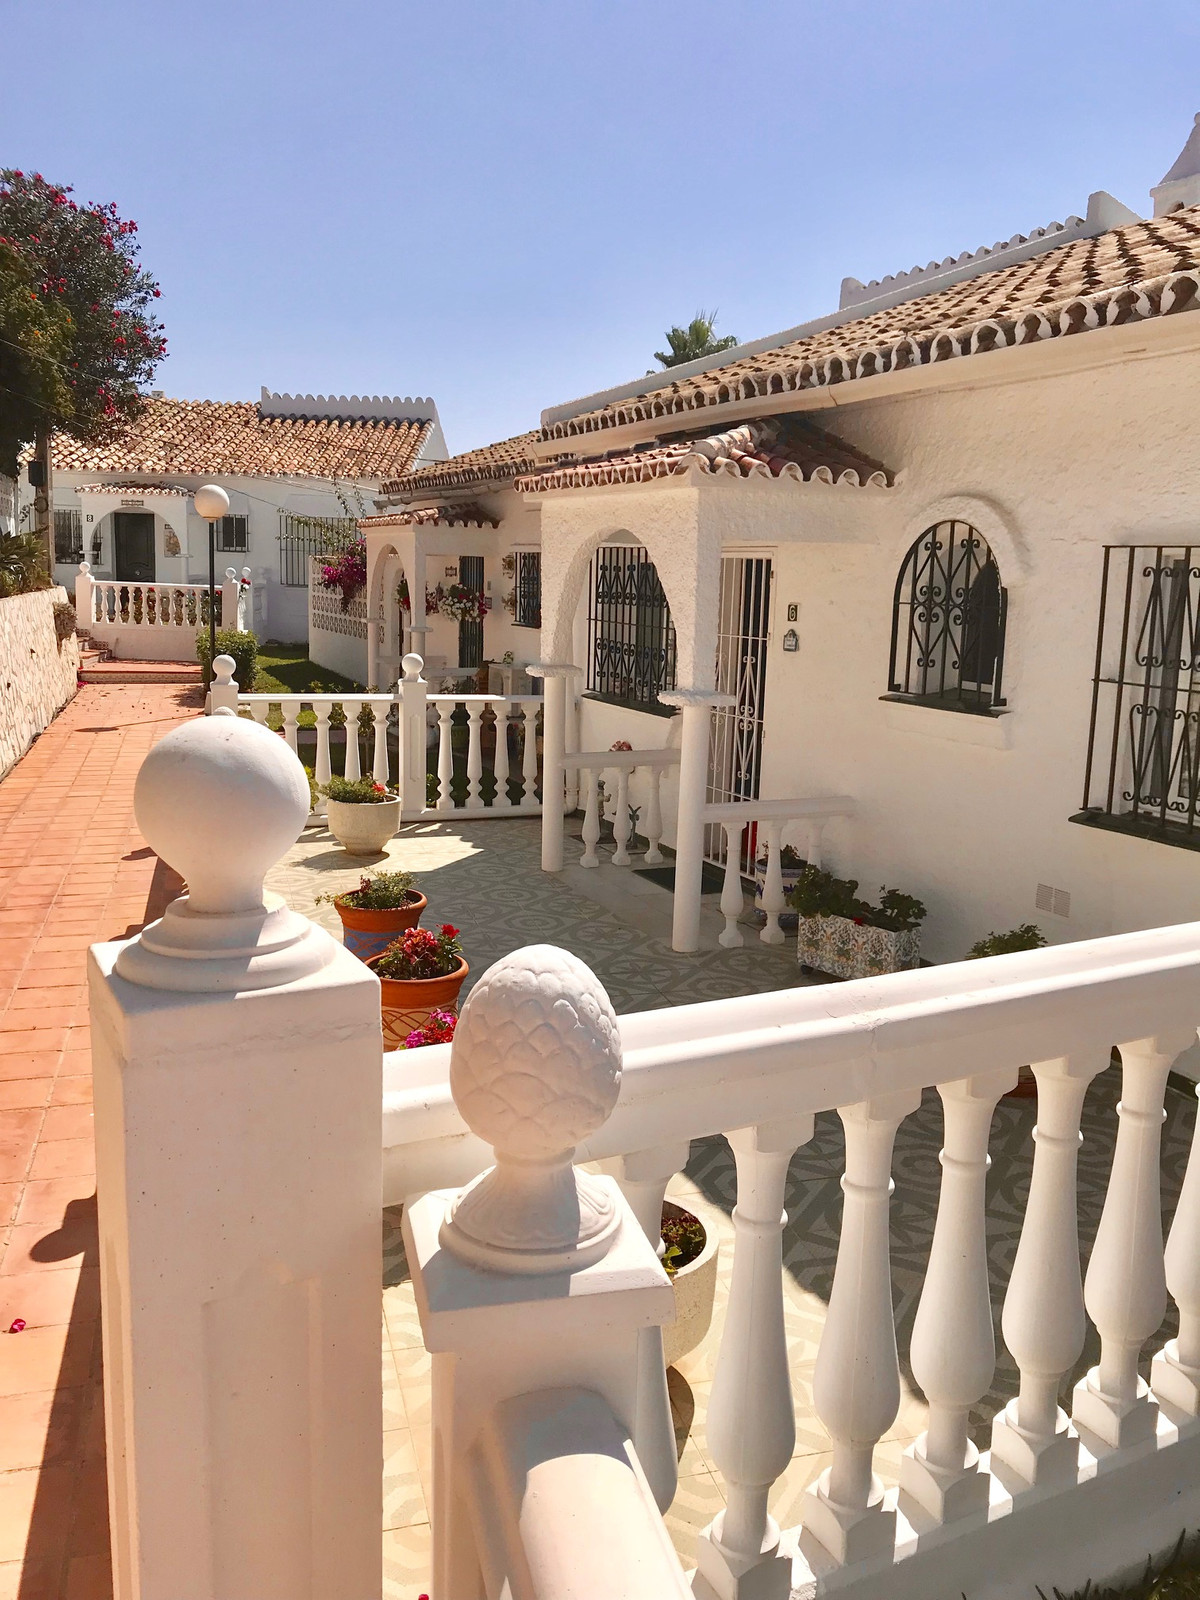 2 Bedroom Townhouse for sale El Faro